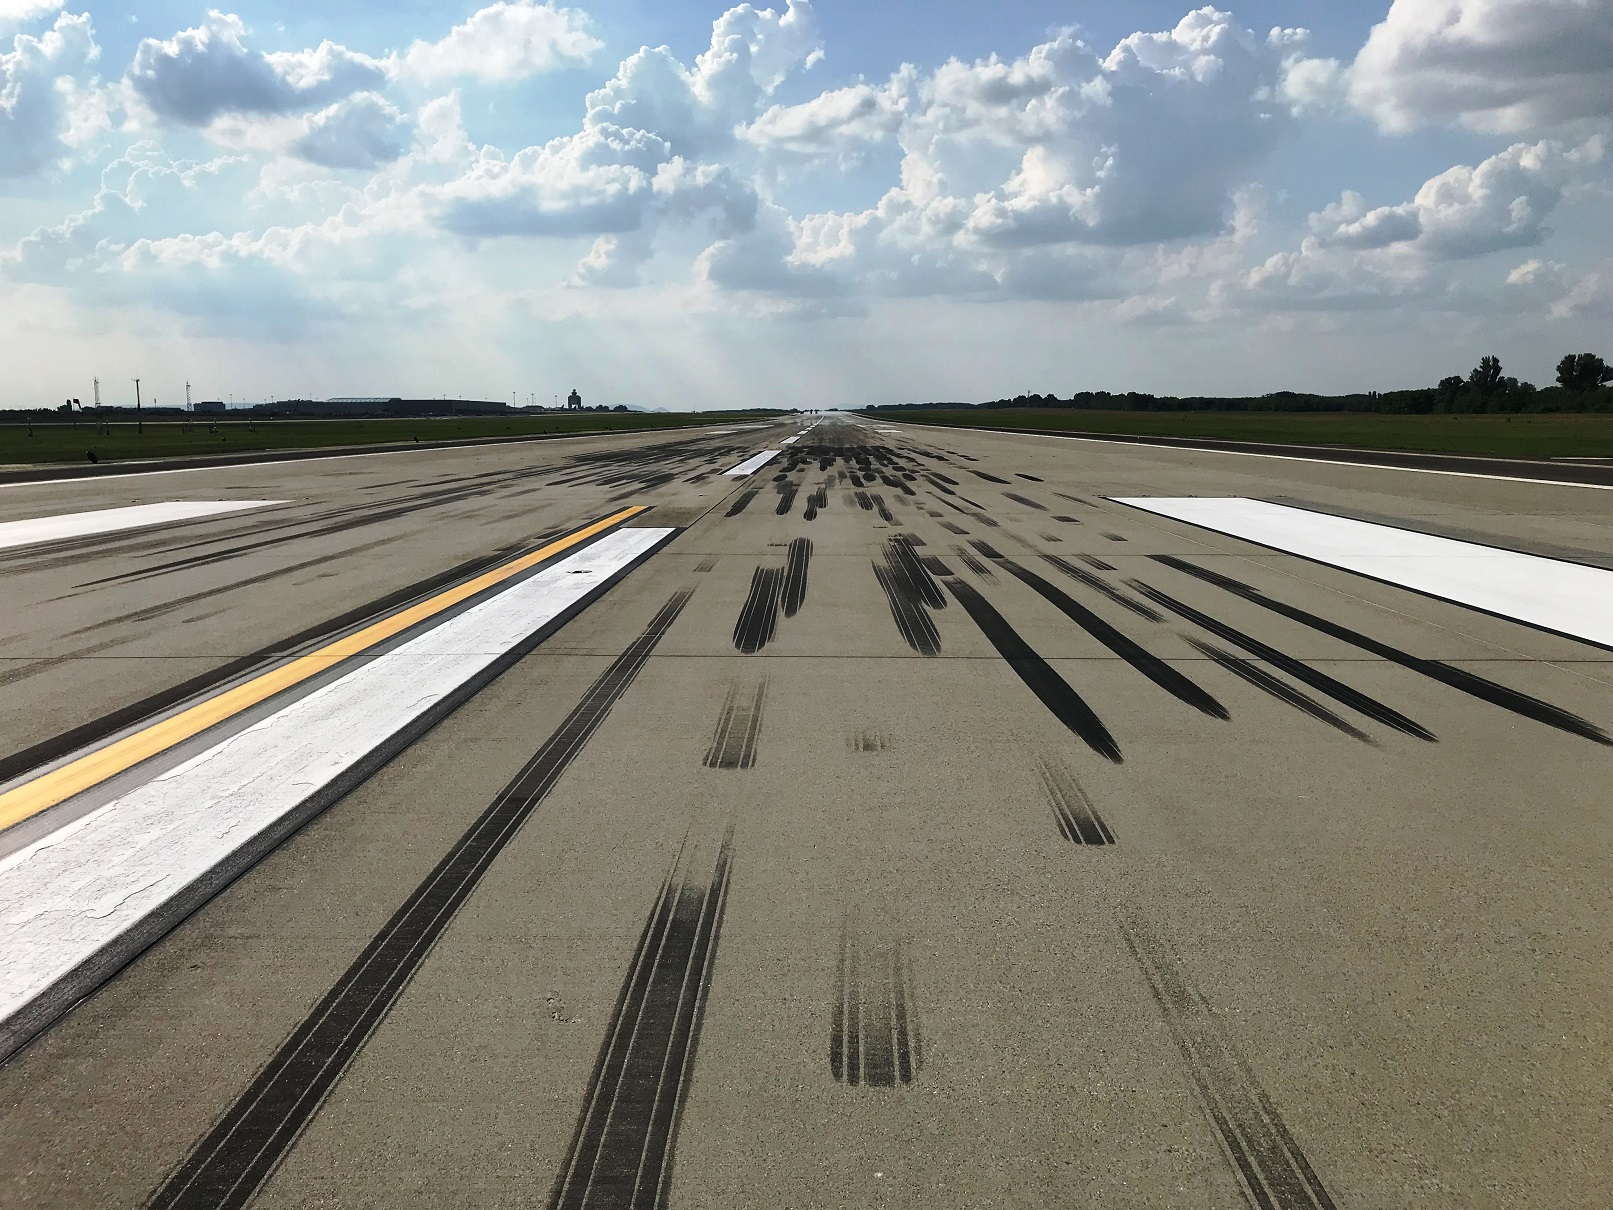 Budapest Airport Ran Out Of Runway On Wednesday